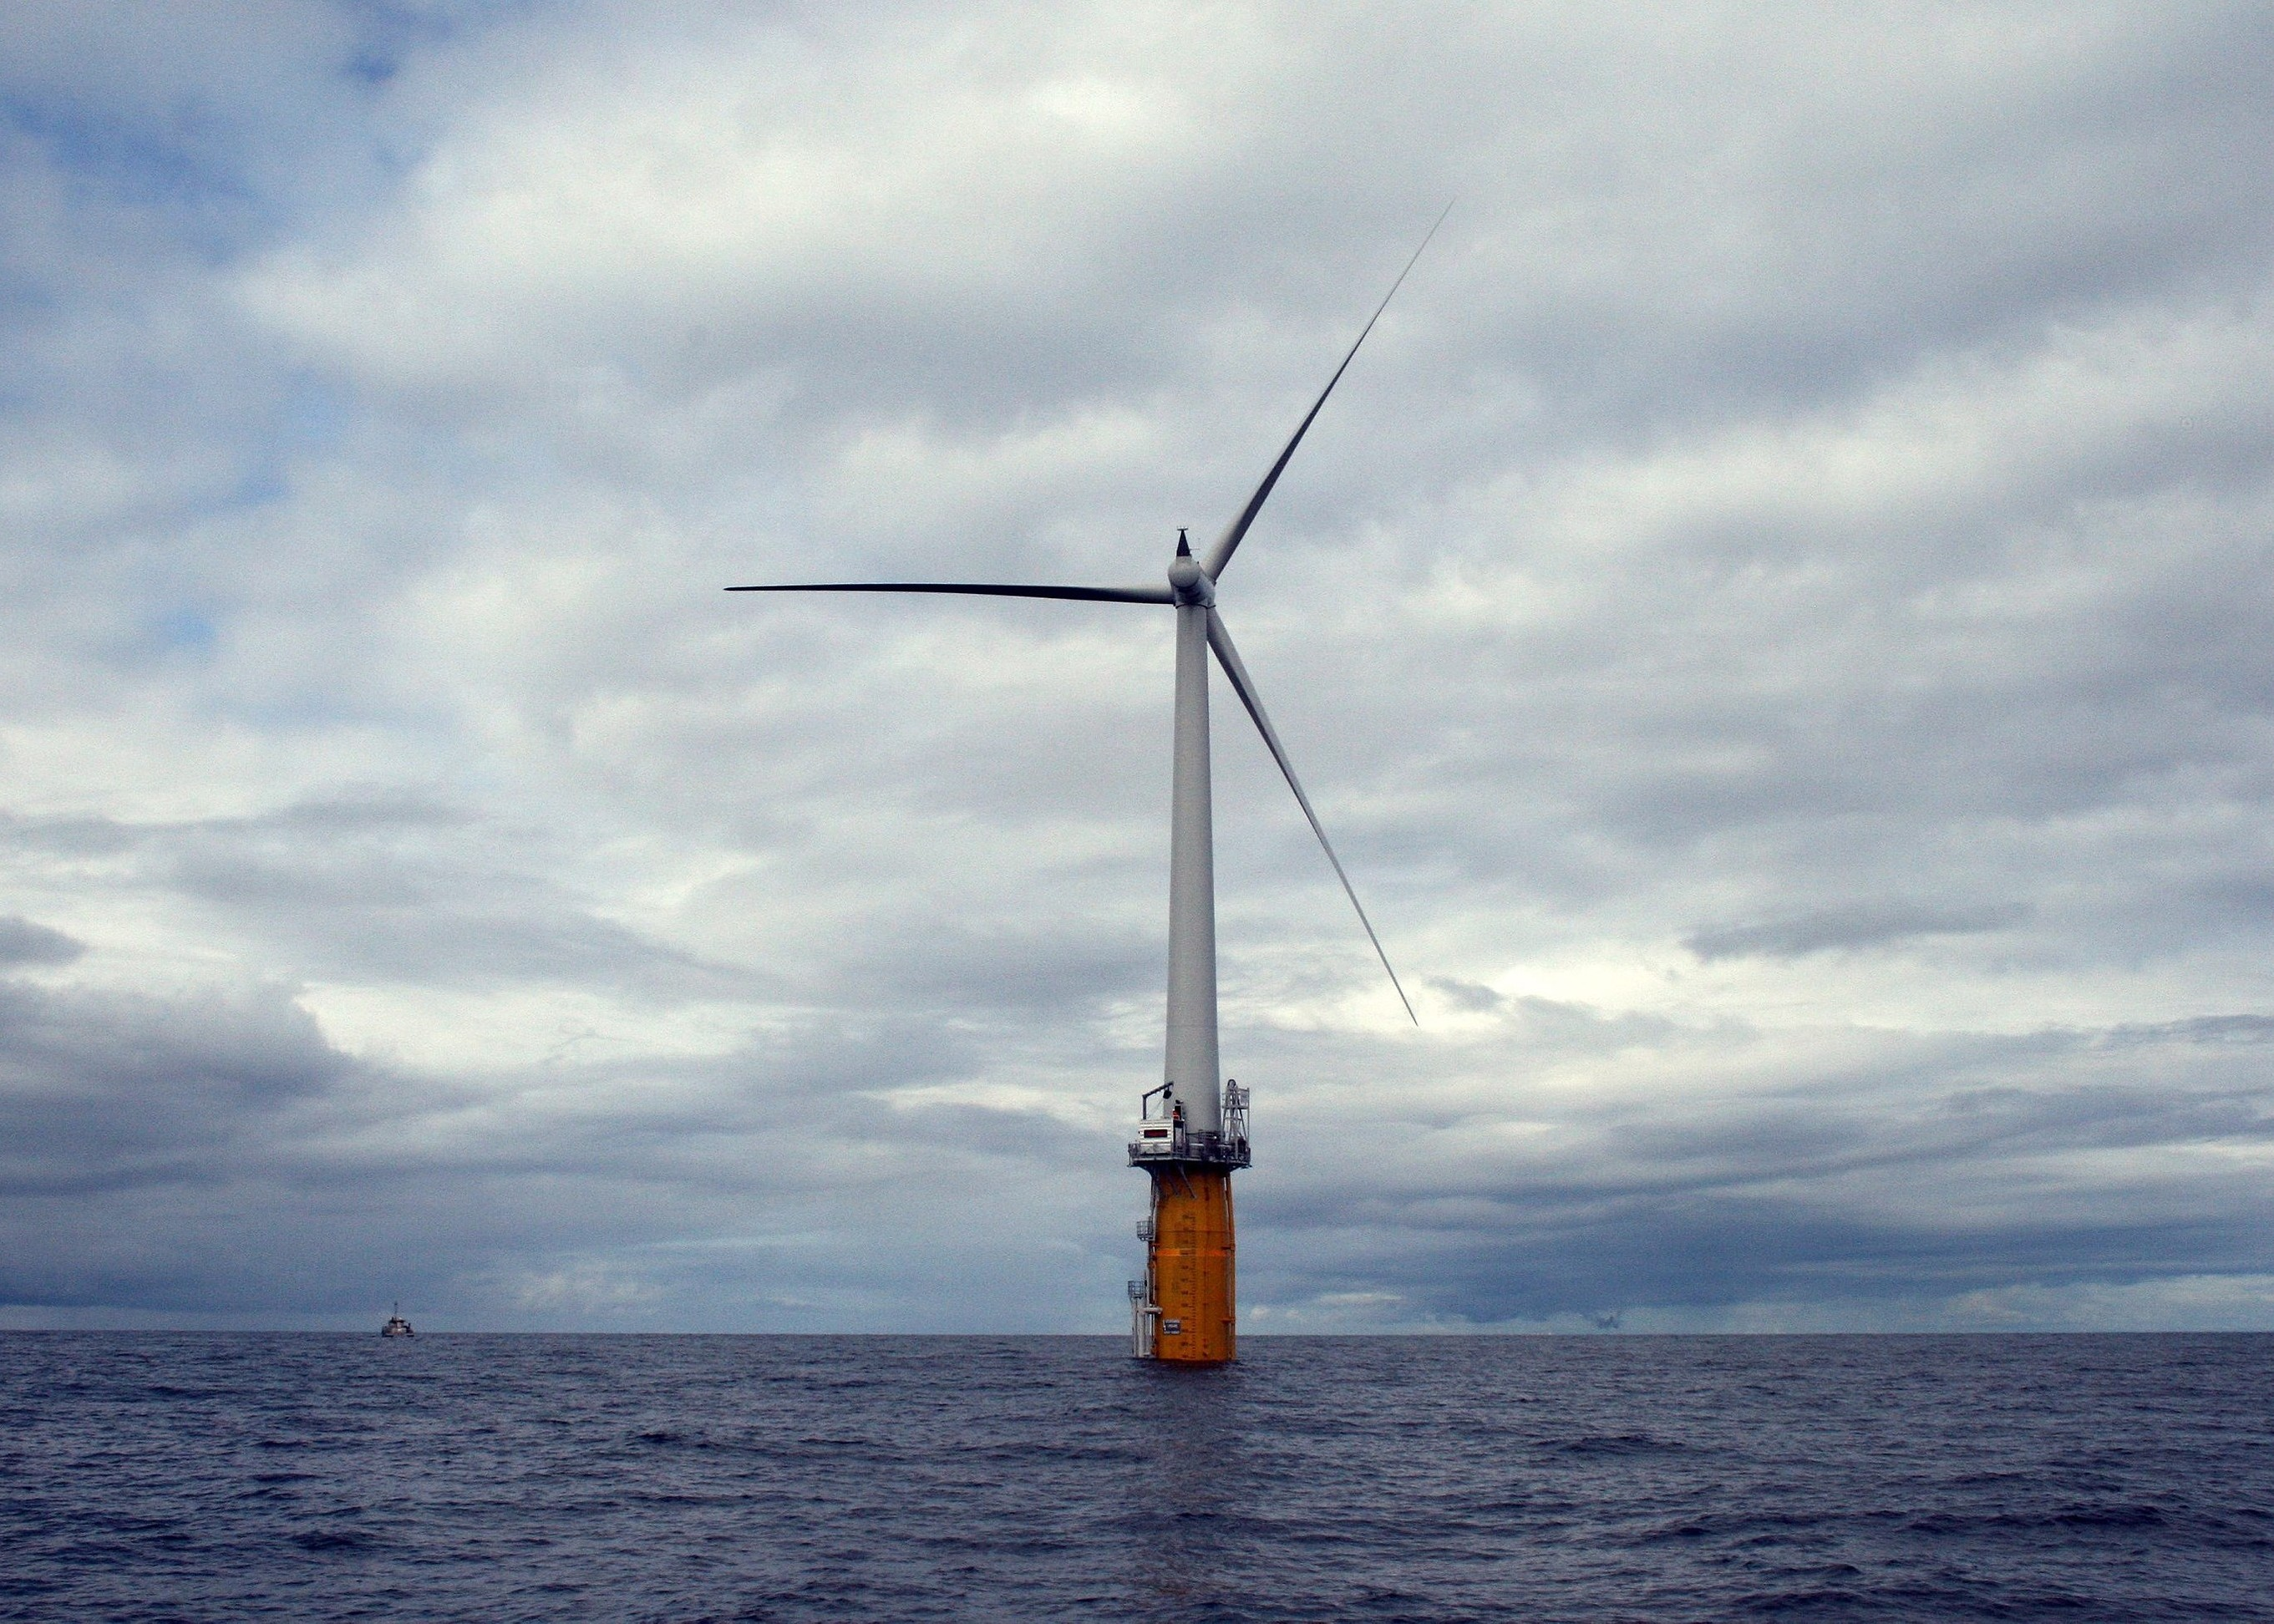 Going Deeper: A New Solution for Offshore Wind - The Liquid Grid